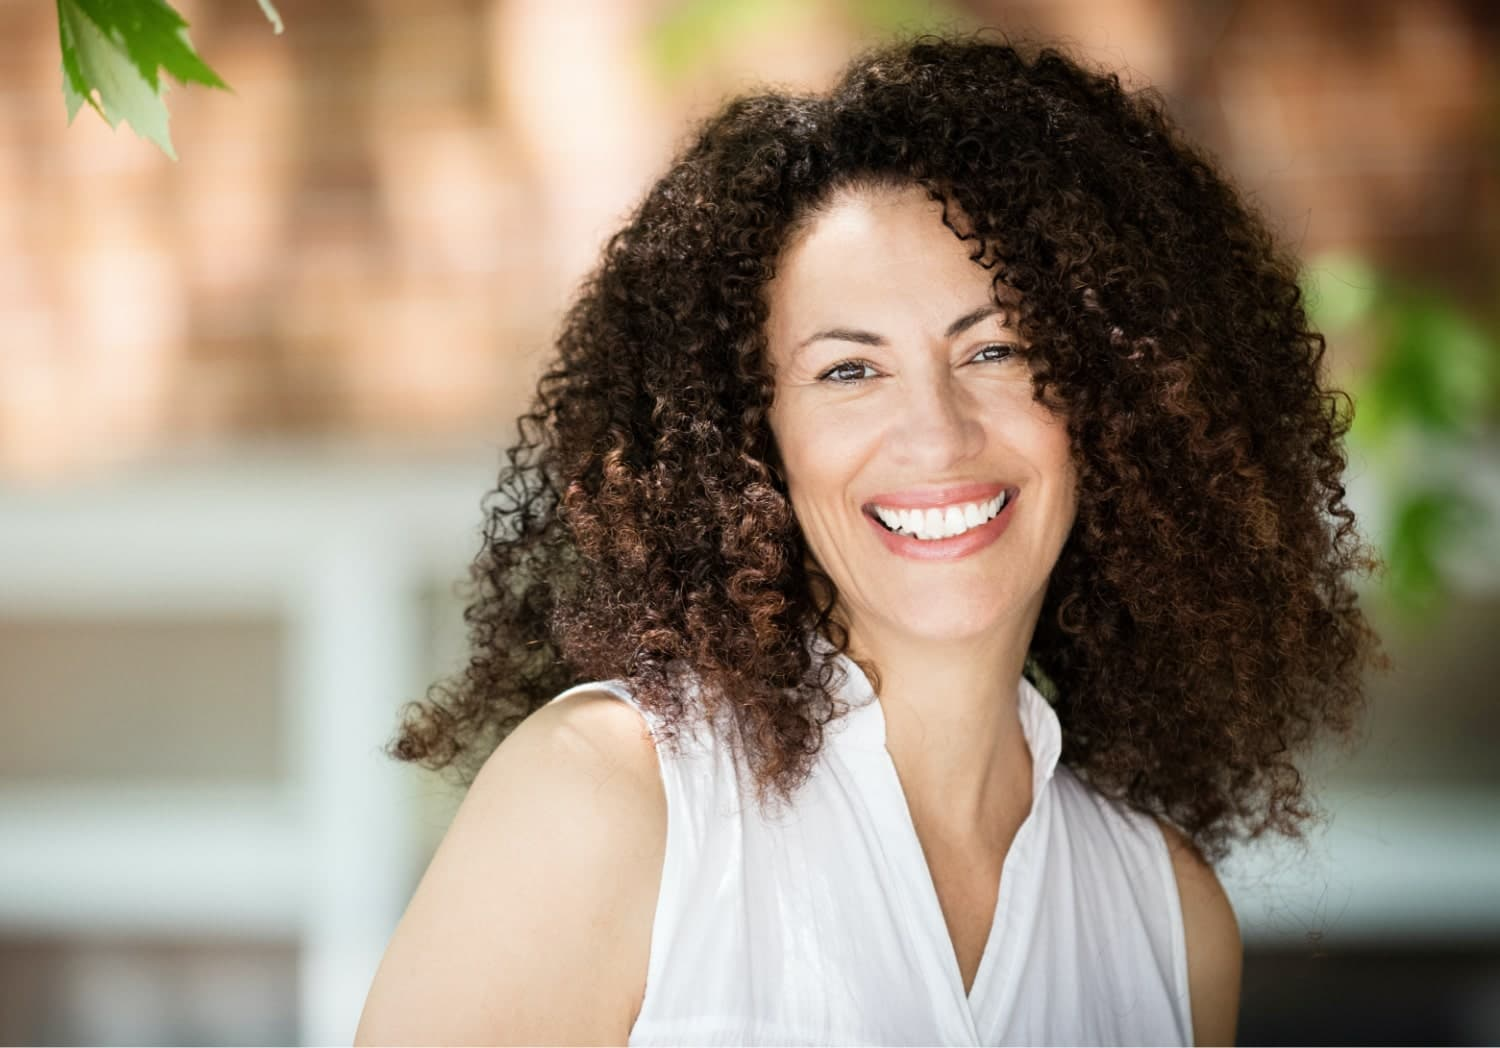 woman with curly hair shows off her healthy smile